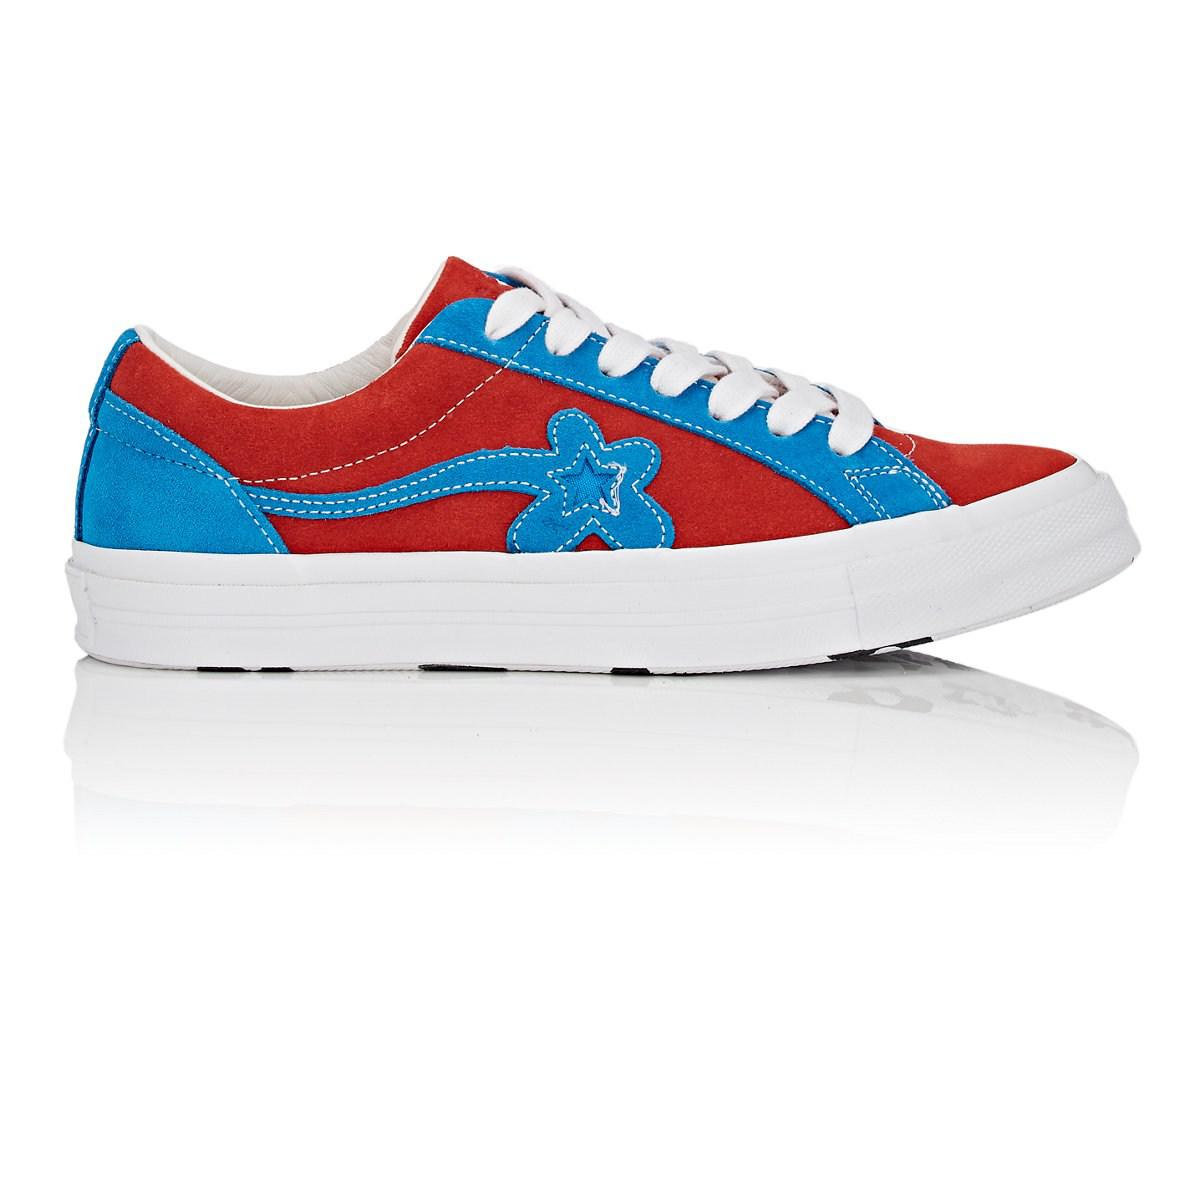 ef742e7233a553 Lyst - Converse Golf Le Fleur One Star Suede Sneakers in Blue for Men